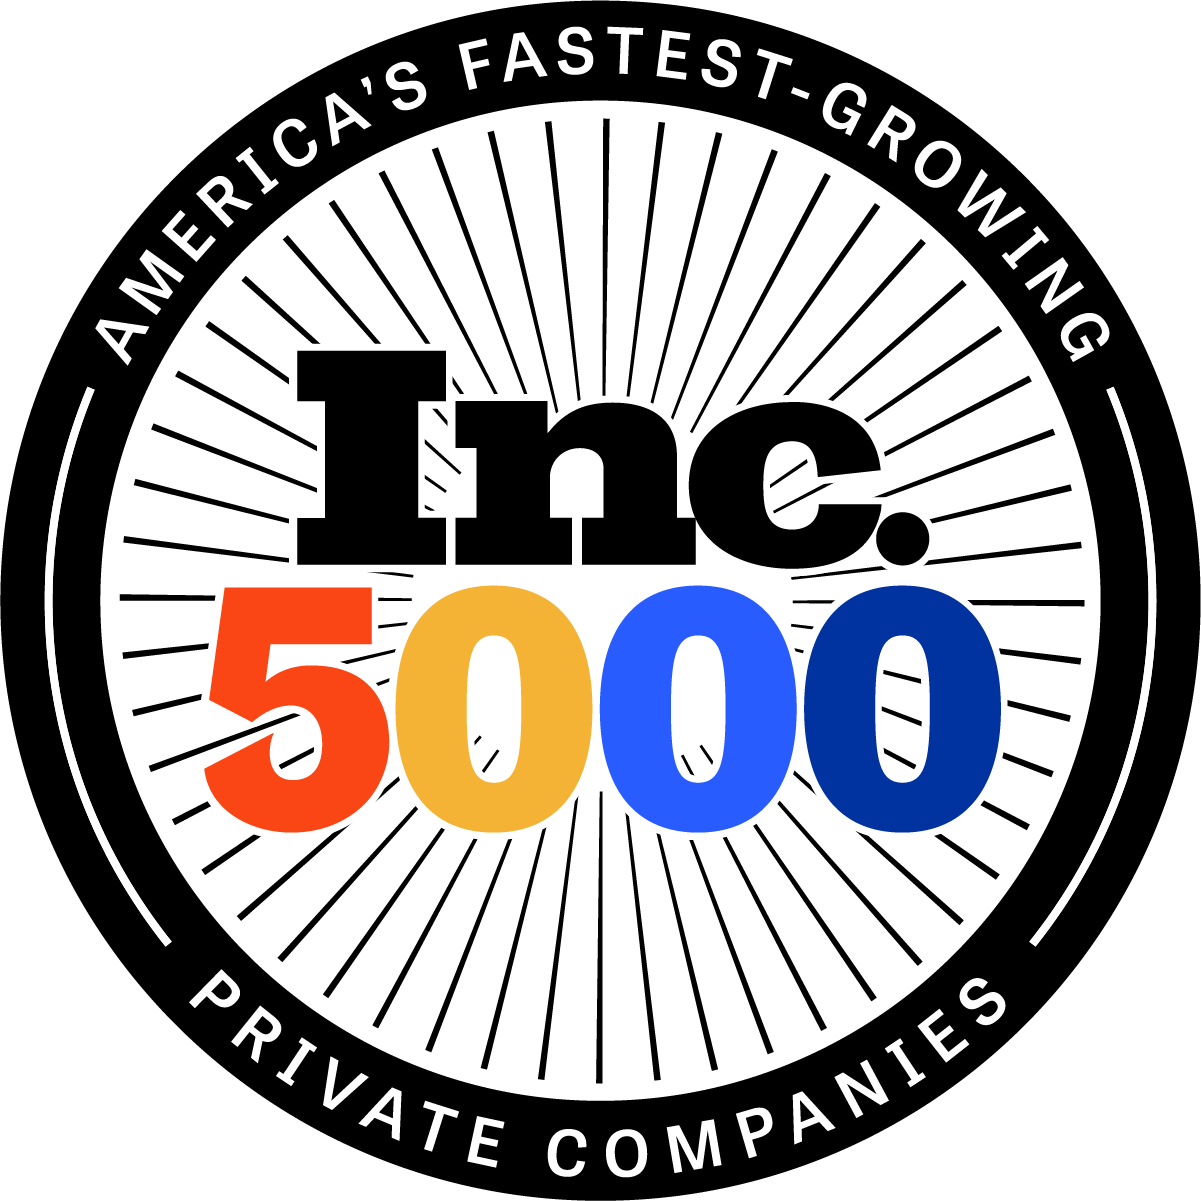 DLP Real Estate Capital Named to the Inc. 5000 List of the Fastest-Growing Companies in America for Impressive 8th Year in a Row